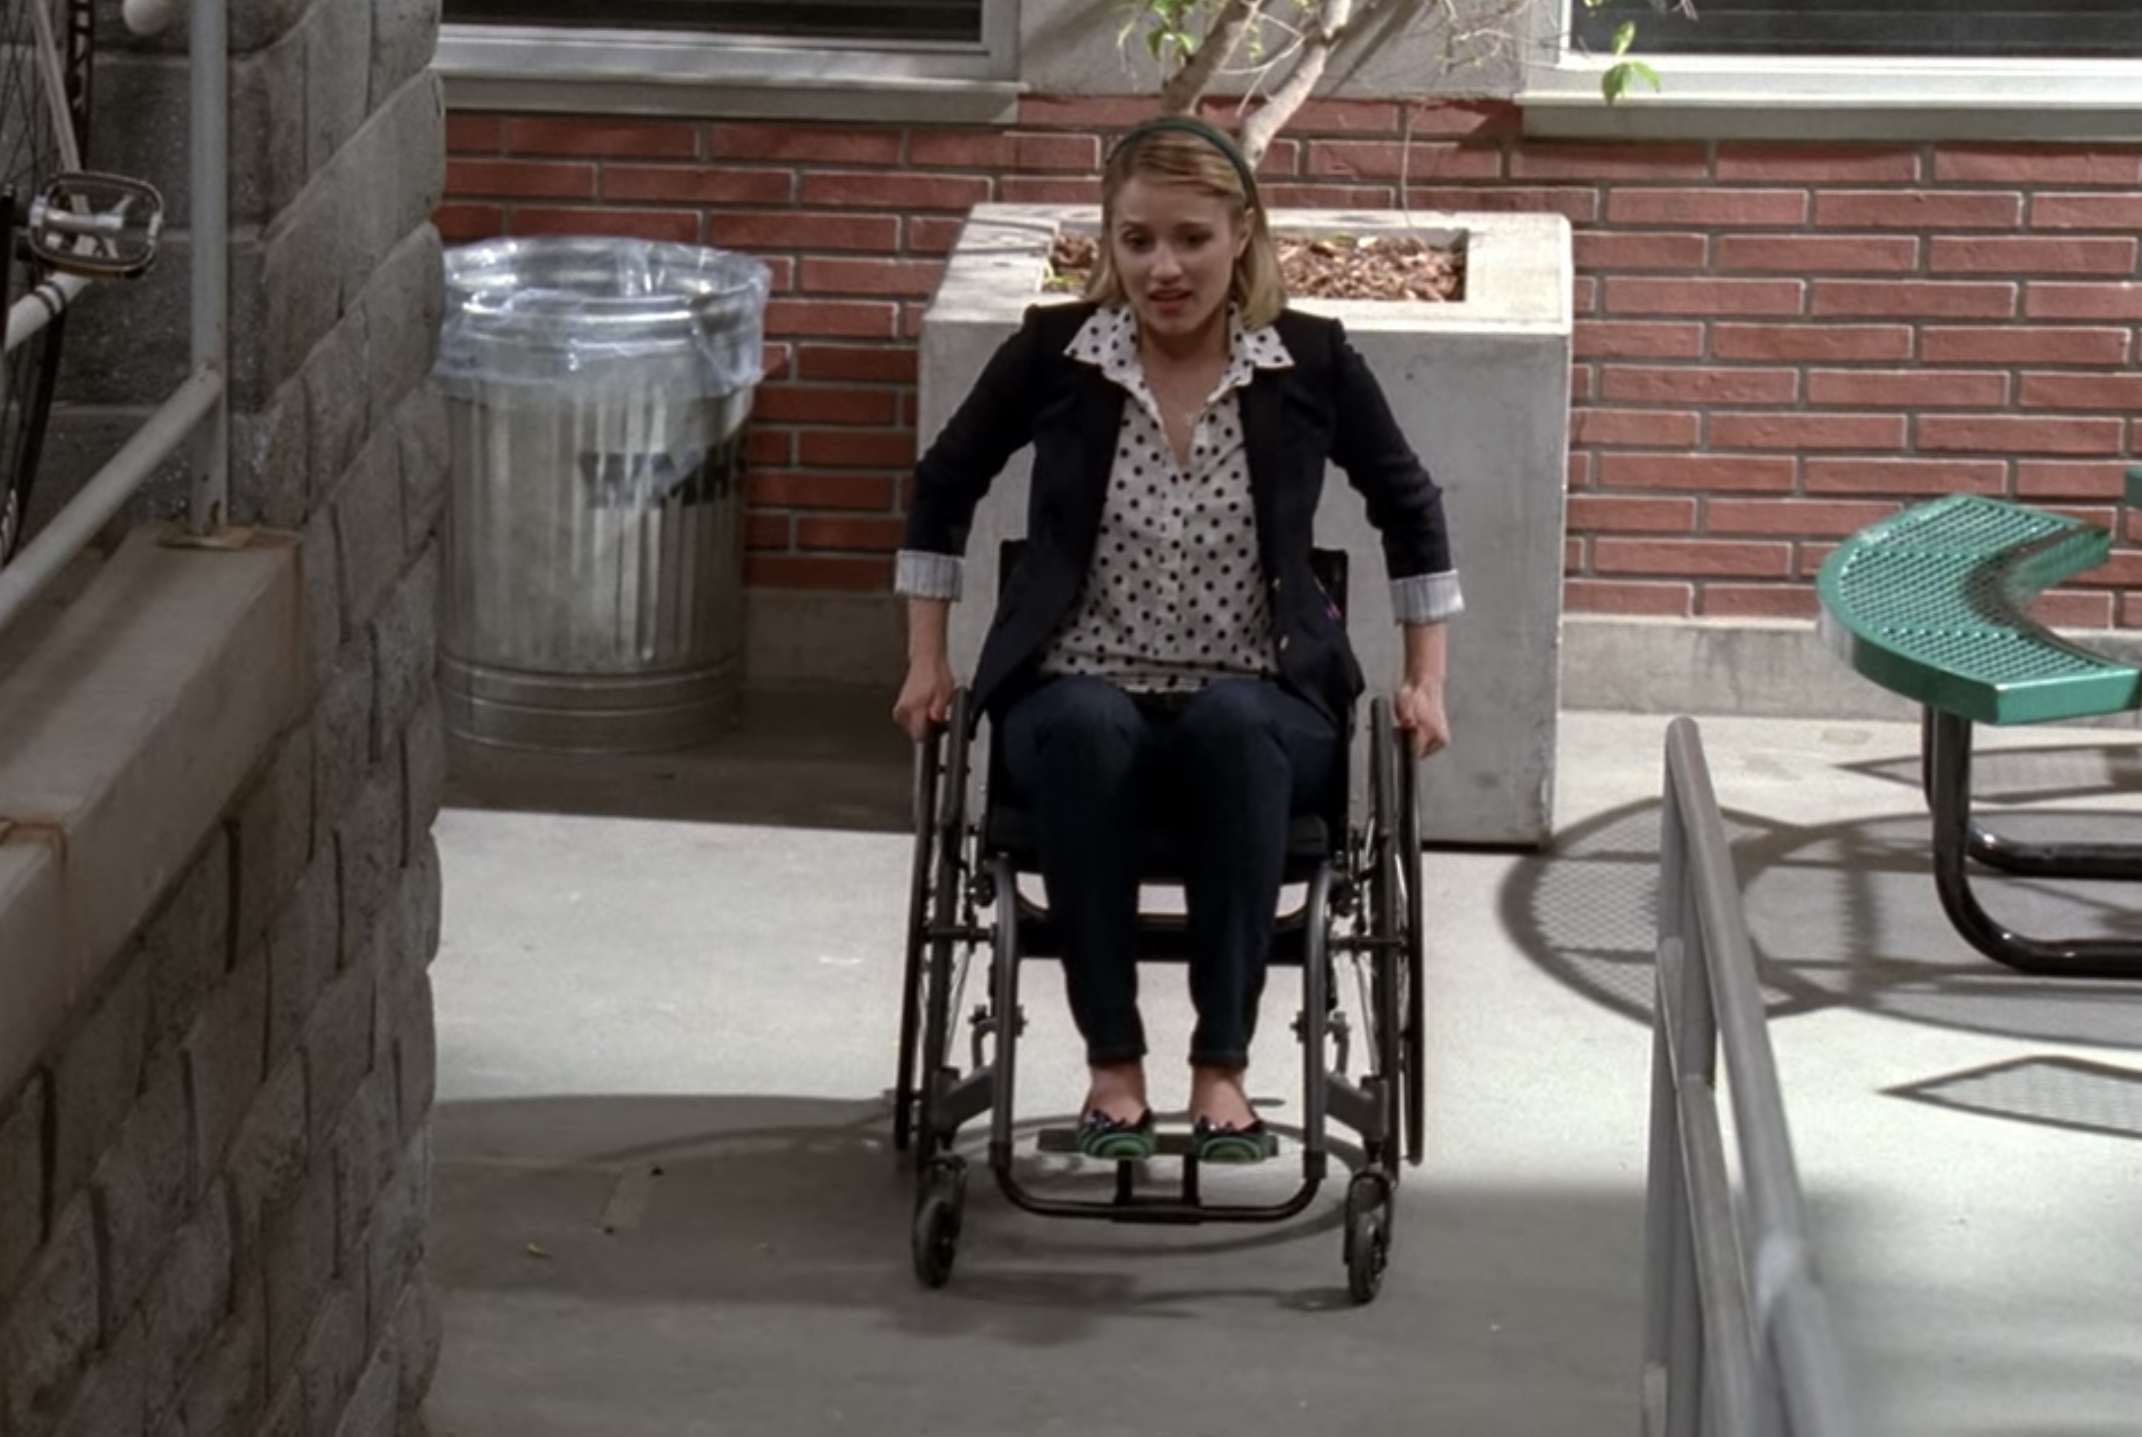 Quinn in a wheelchair going up a ramp